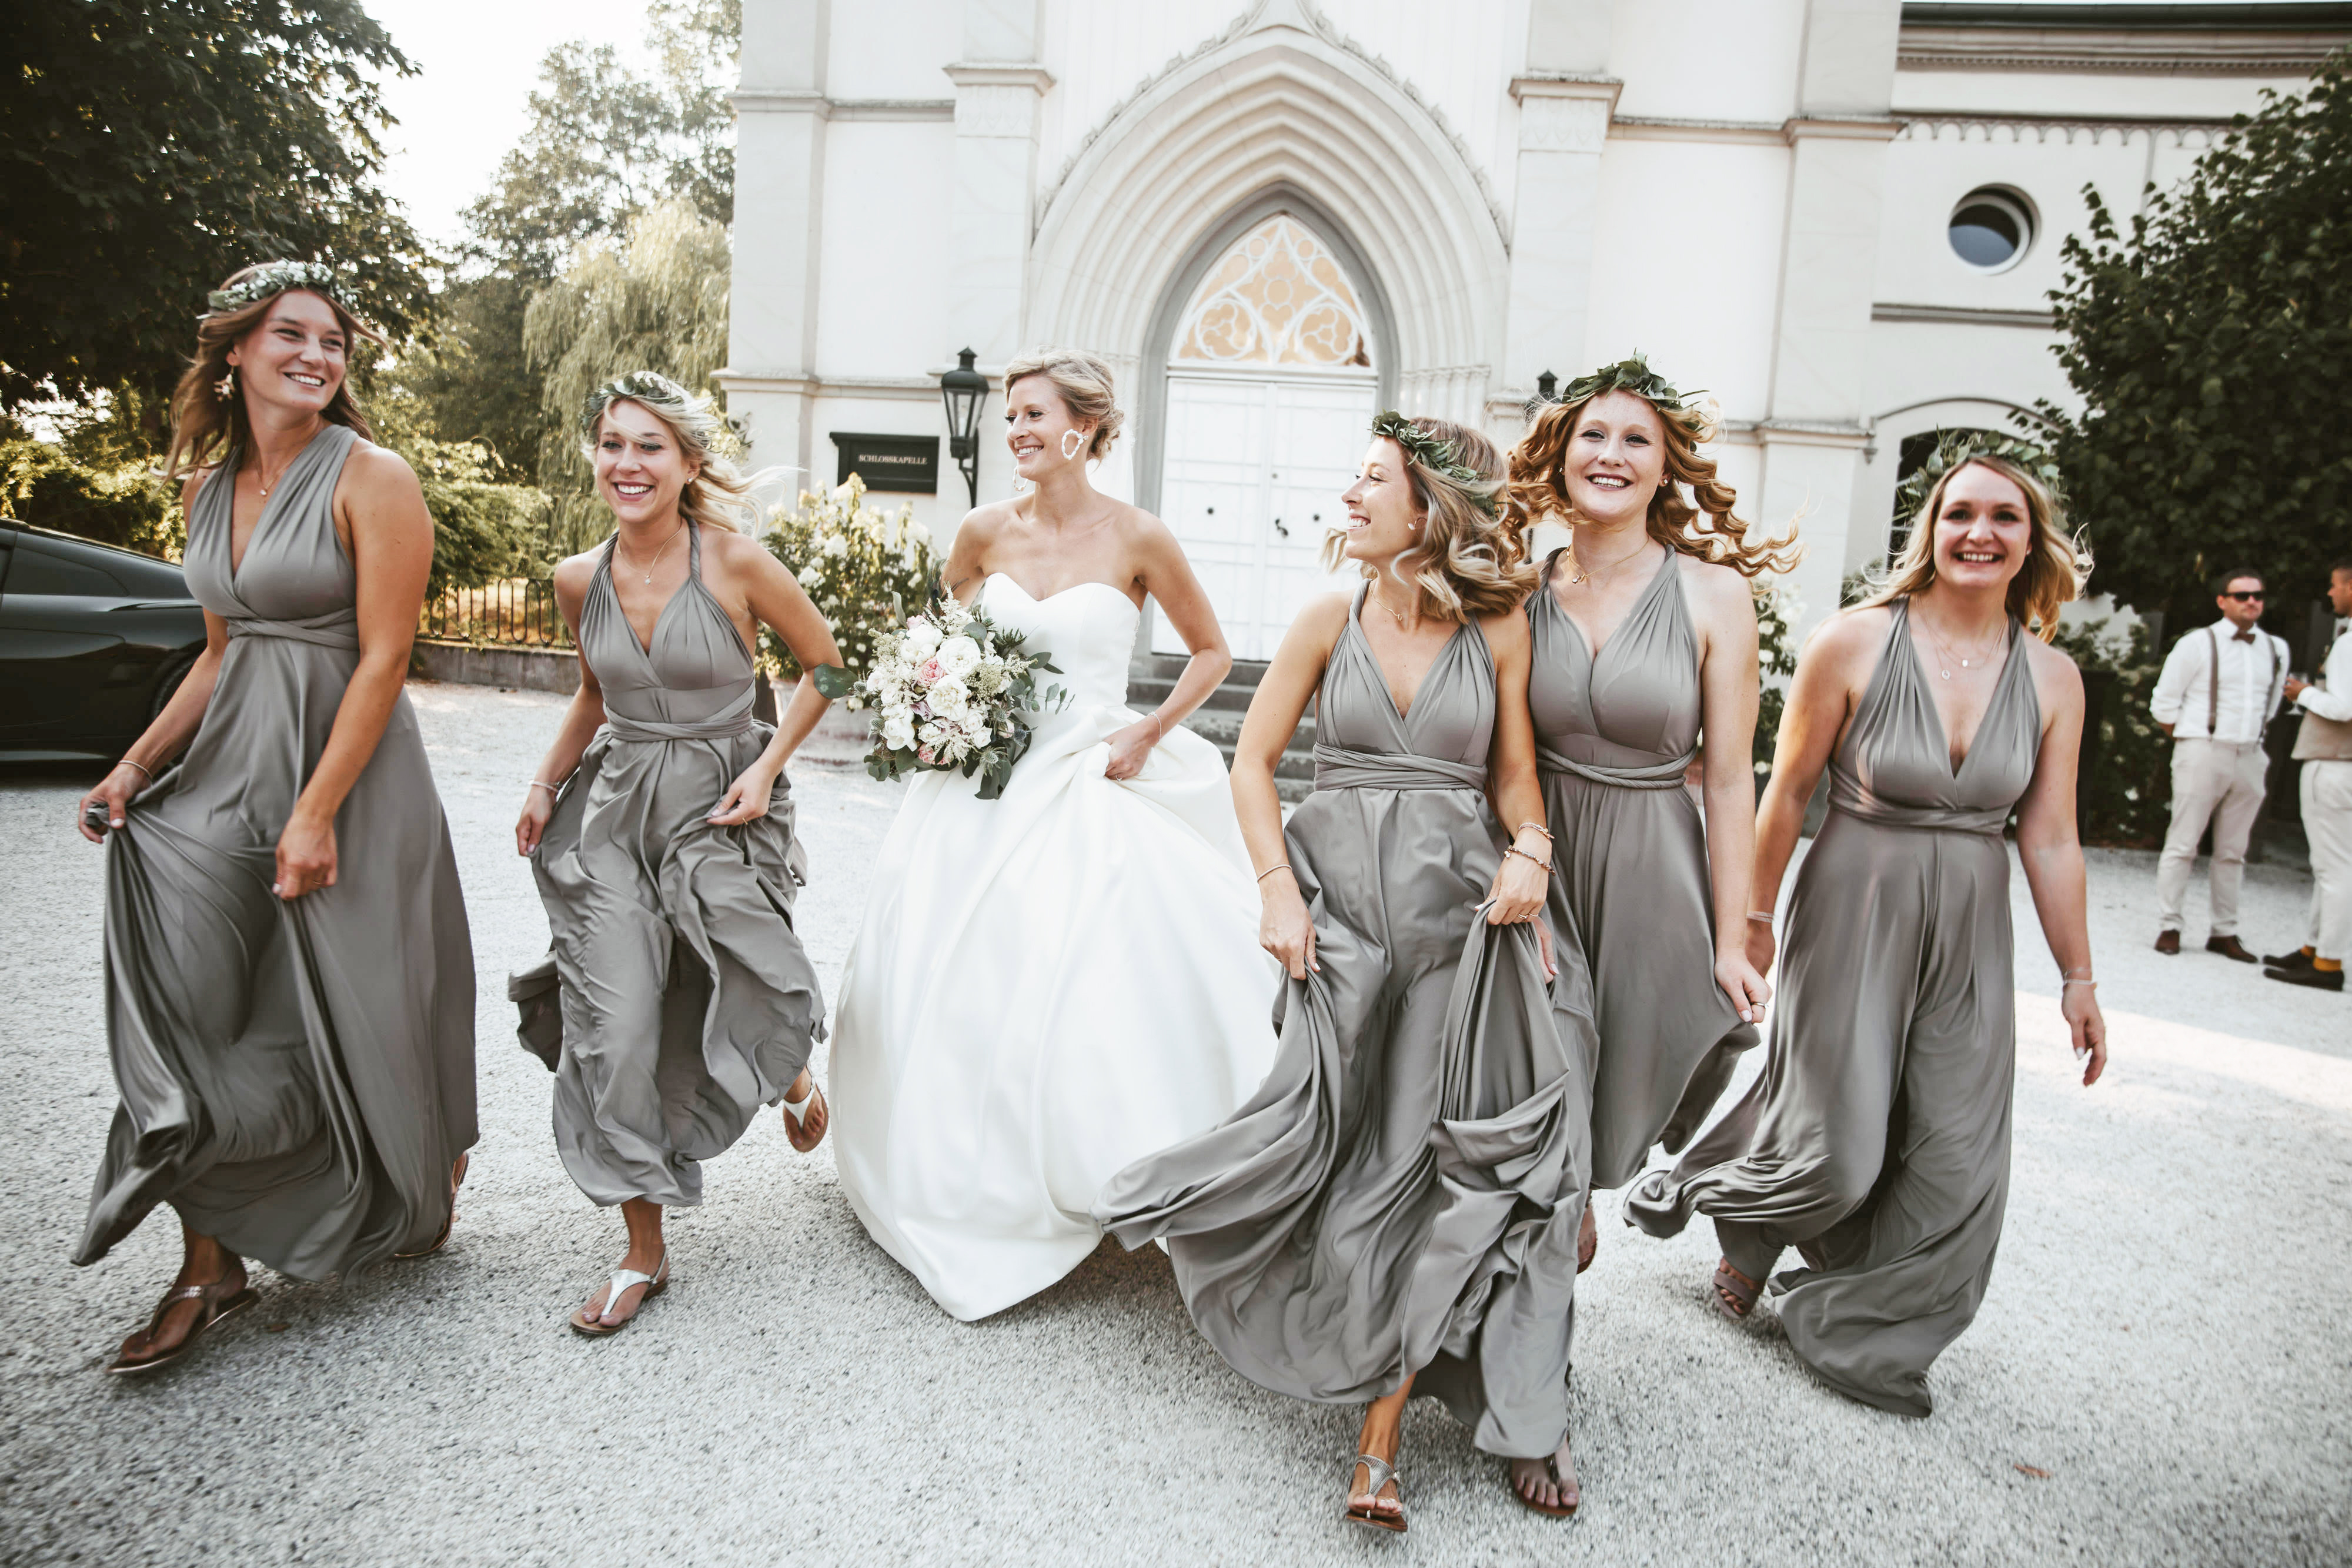 Group of bridesmaids in convertible dresses